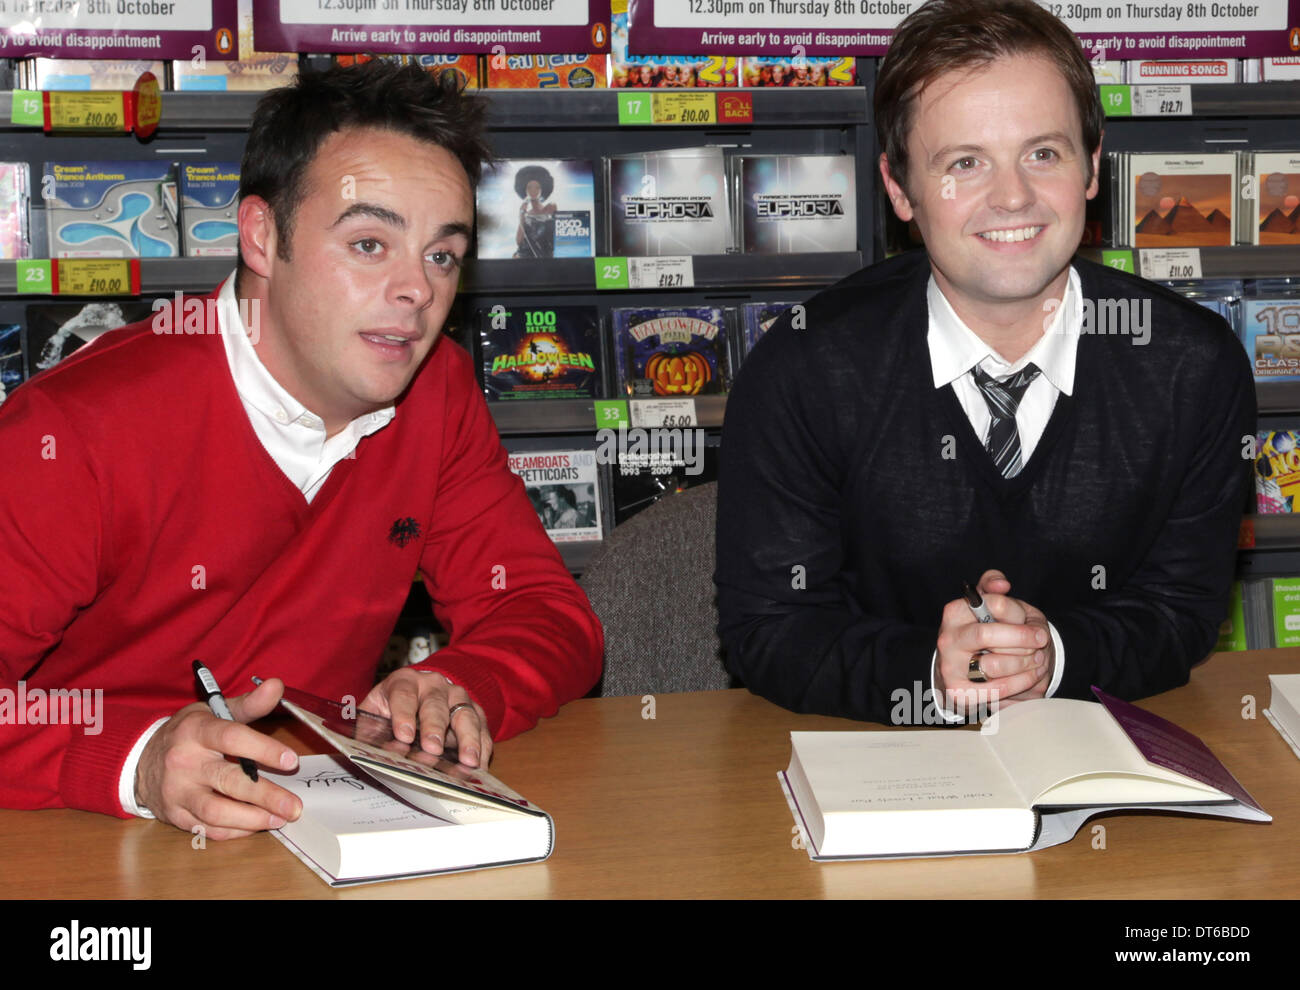 Ant and Dec Celebrity TV personalities and show hosts Asda Derby - Stock Image